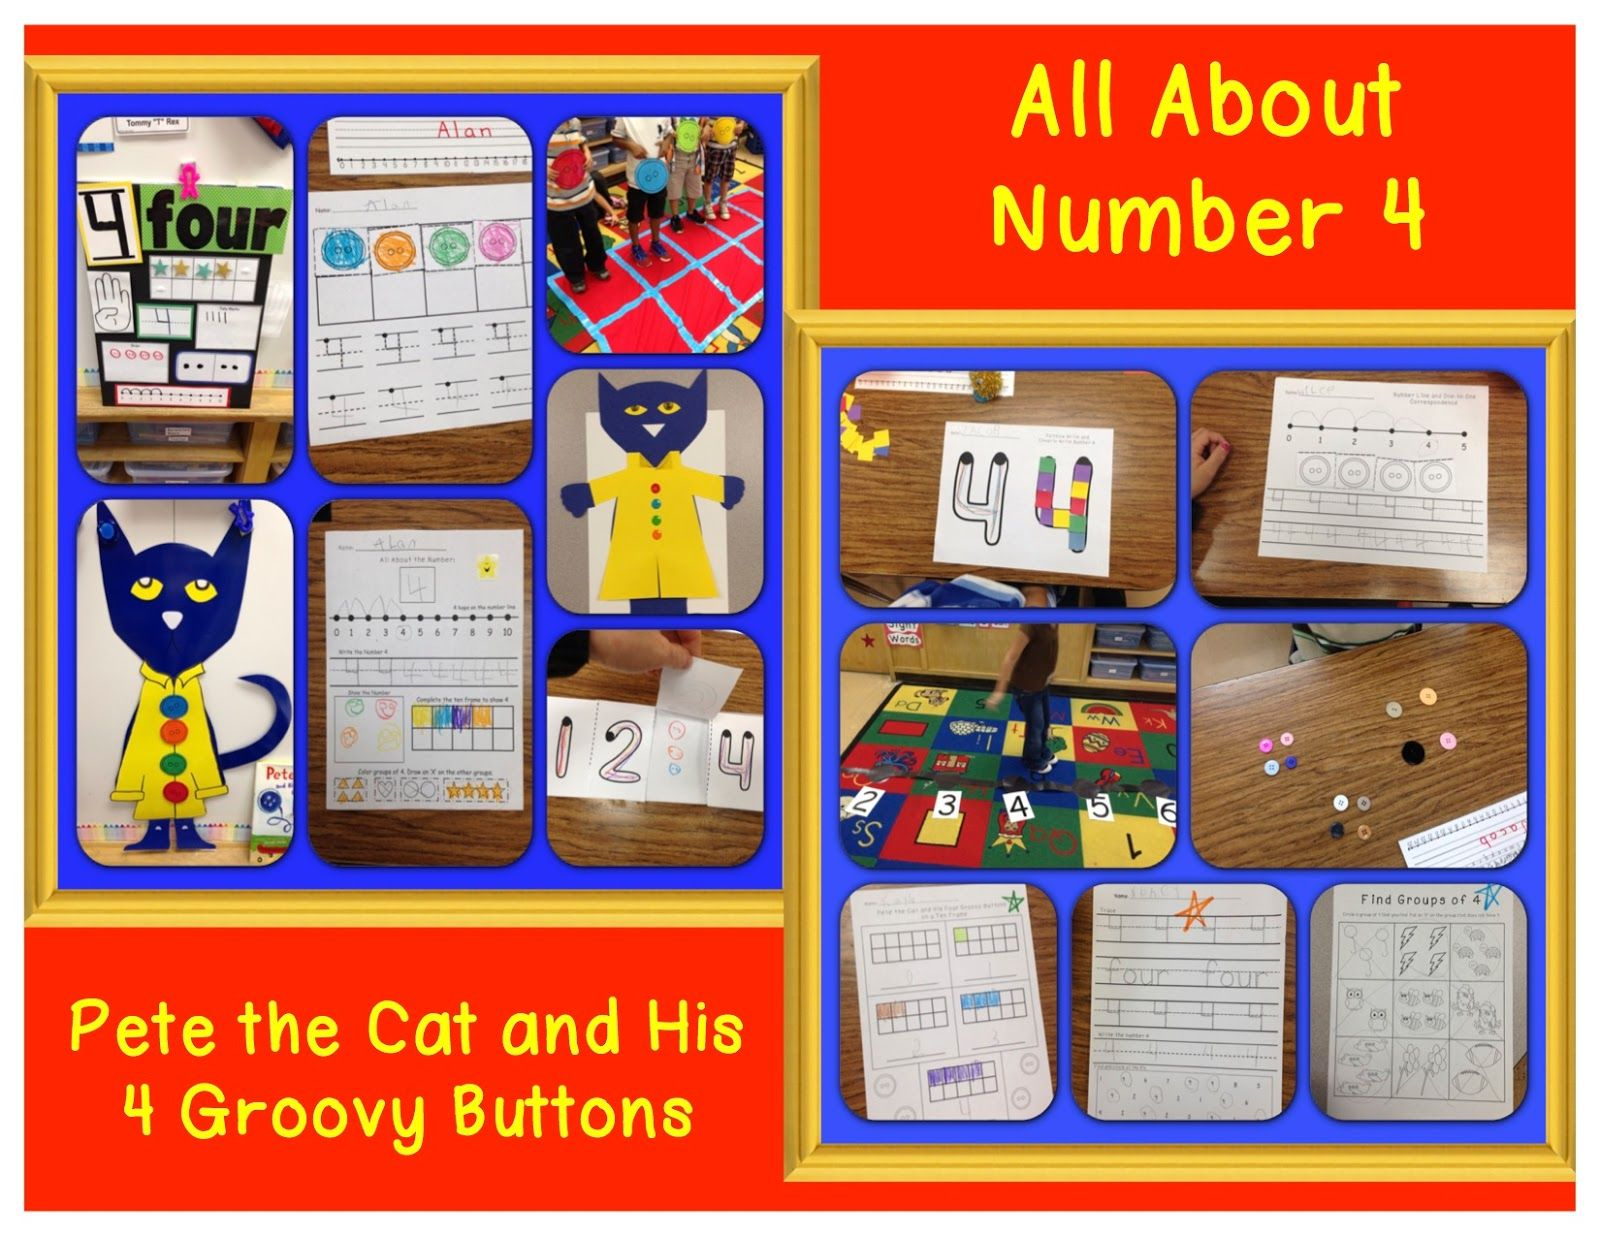 Pete The Cat And His 4 Groovy Buttons Activities Number